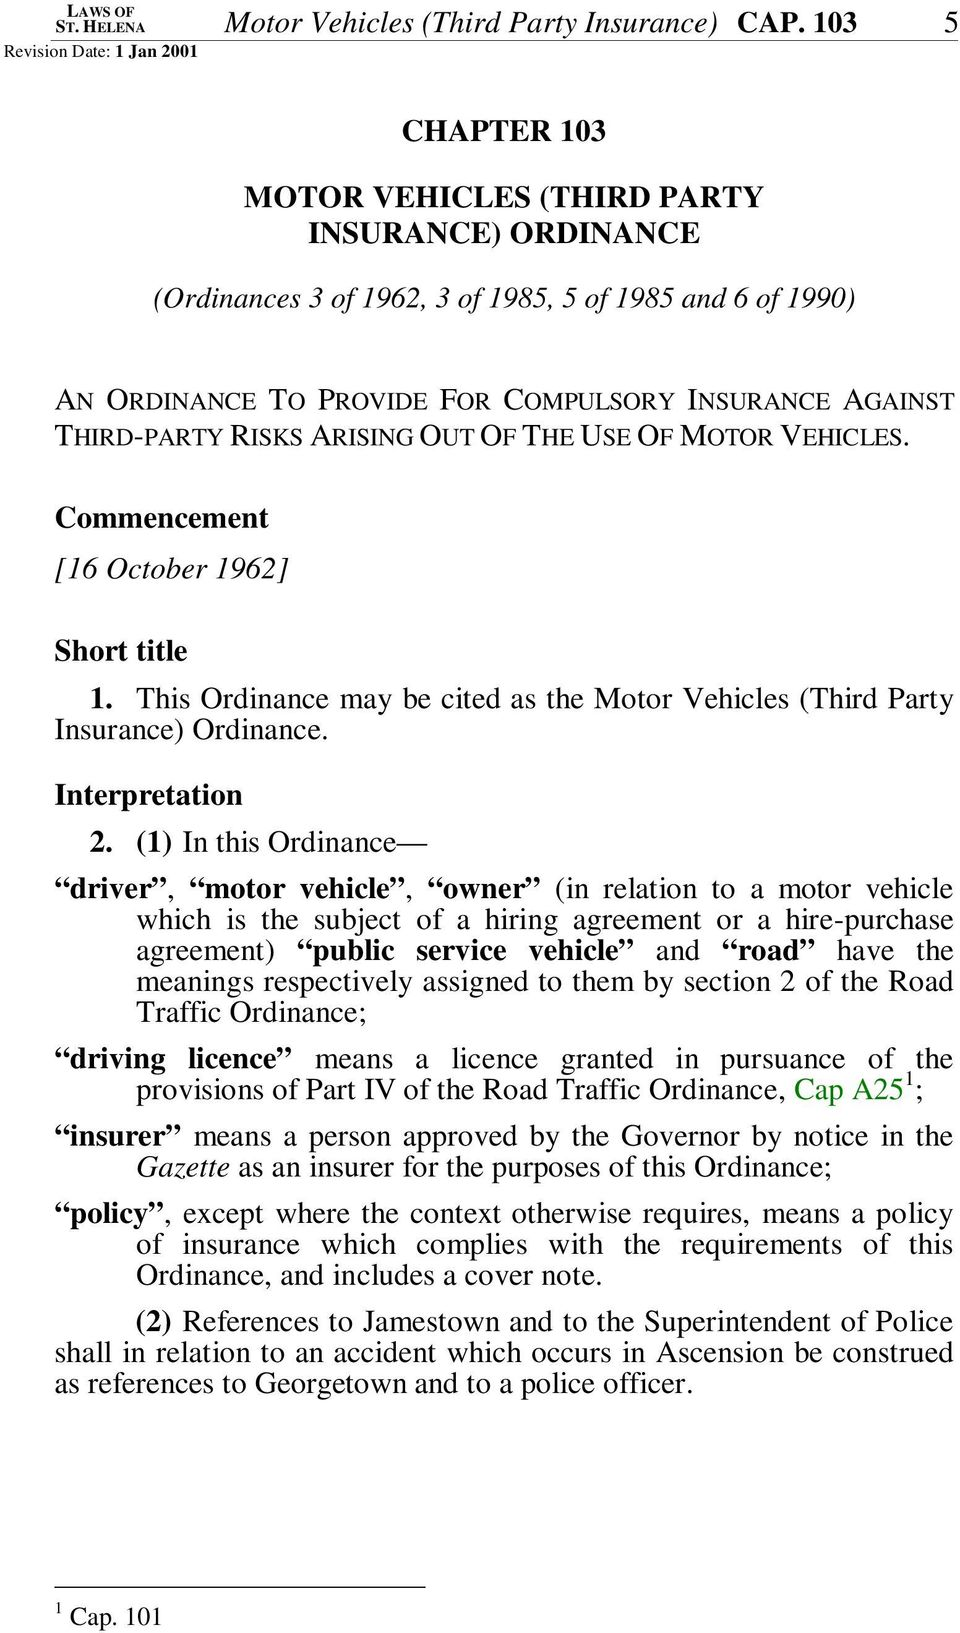 RISKS ARISING OUT OF THE USE OF MOTOR VEHICLES. Commencement [16 October 1962] Short title 1. This Ordinance may be cited as the Motor Vehicles (Third Party Insurance) Ordinance. Interpretation 2.